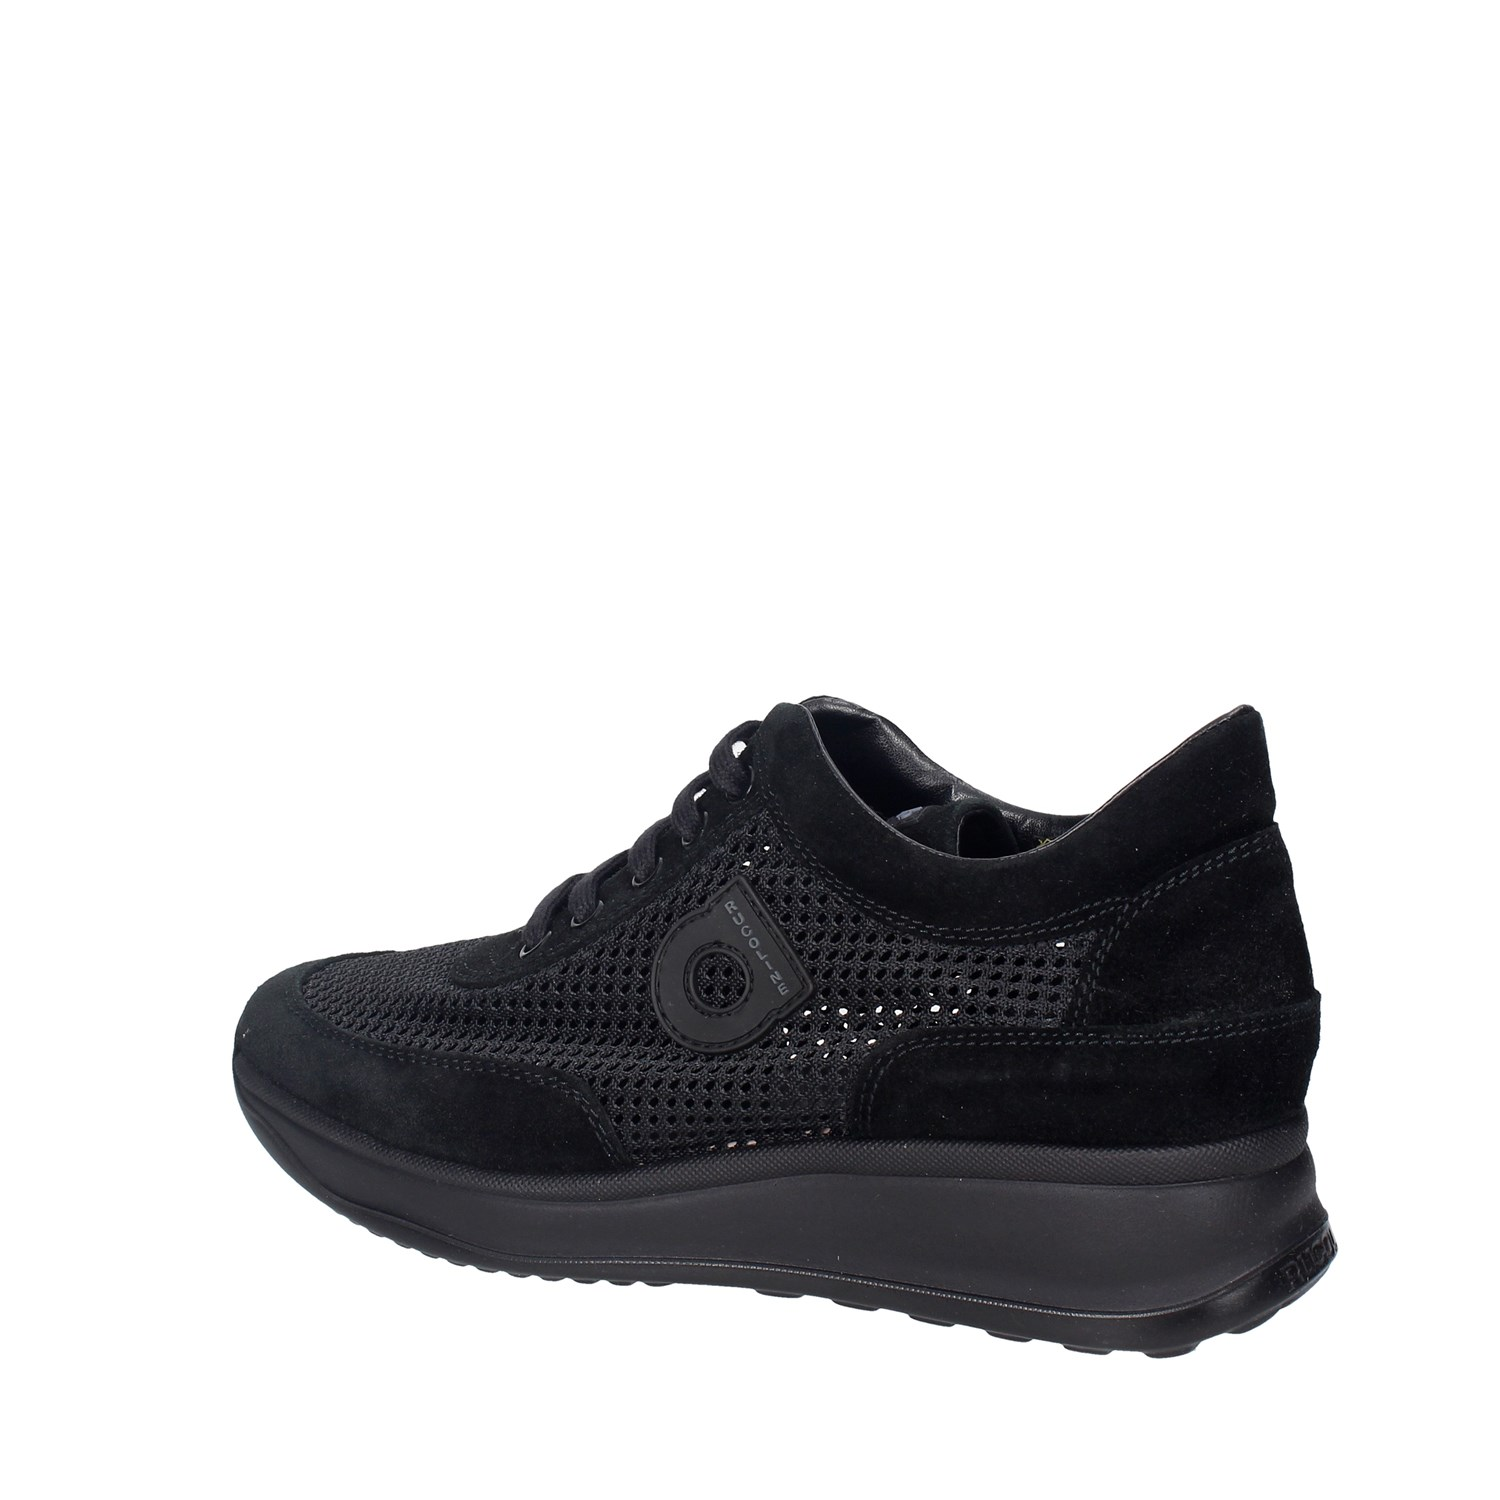 Niedrige Sneakers Damen Agile By By By Rucoline  1304(A12) Frühjahr/Sommer c7b73d